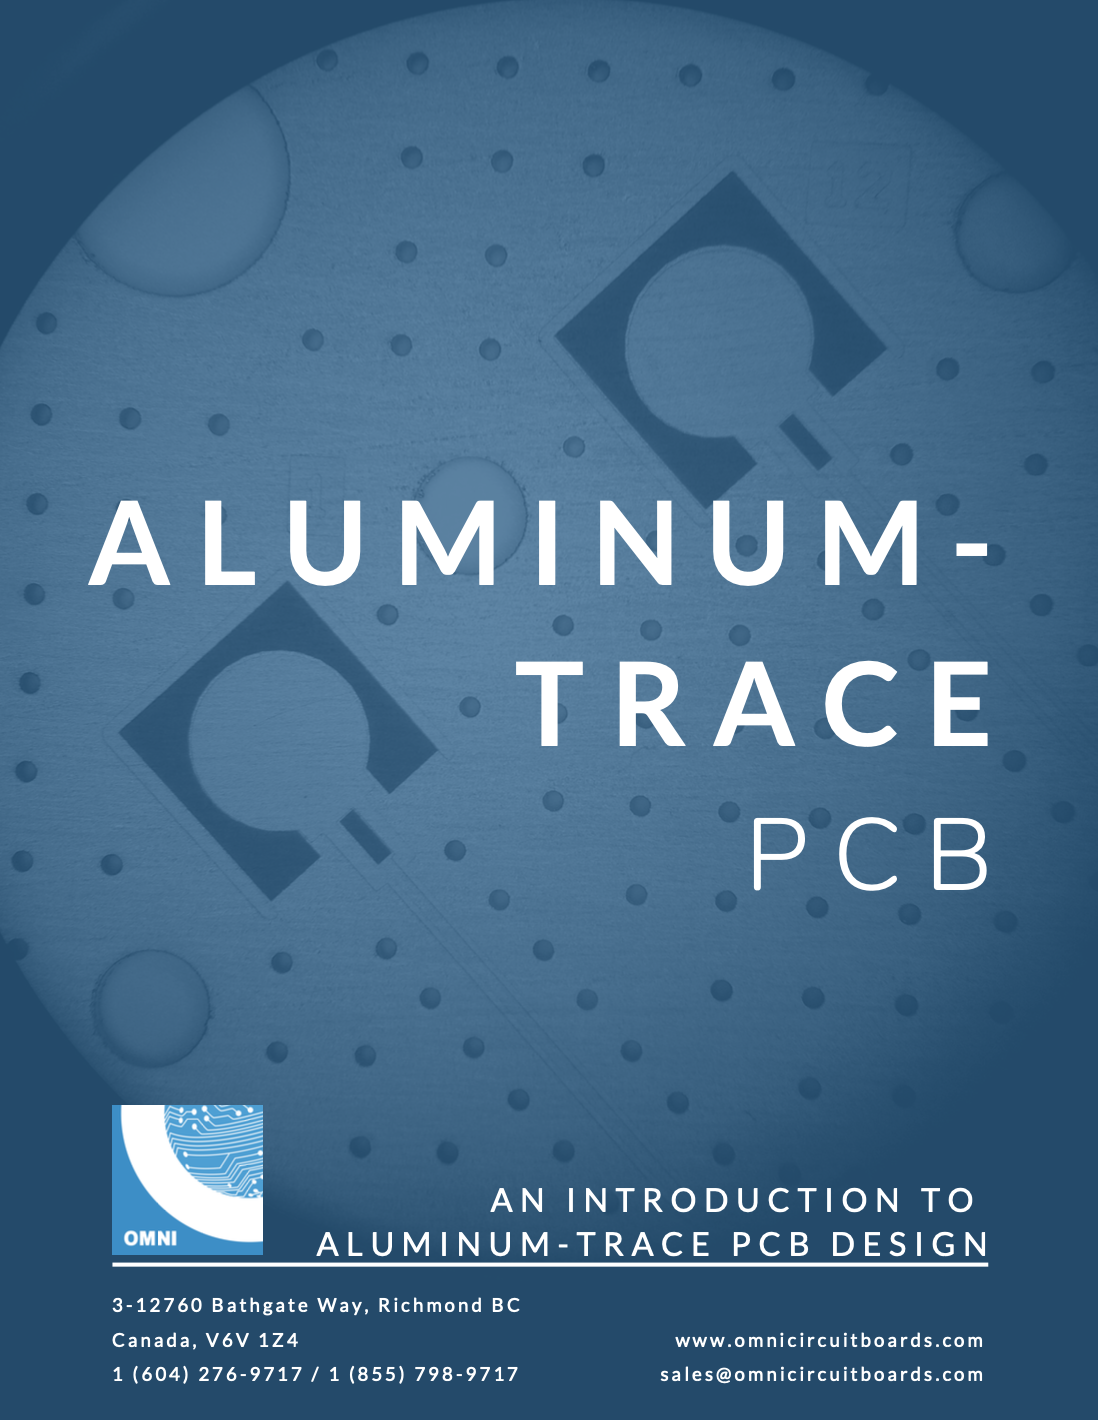 Aluminum Trace PCB Design Kit